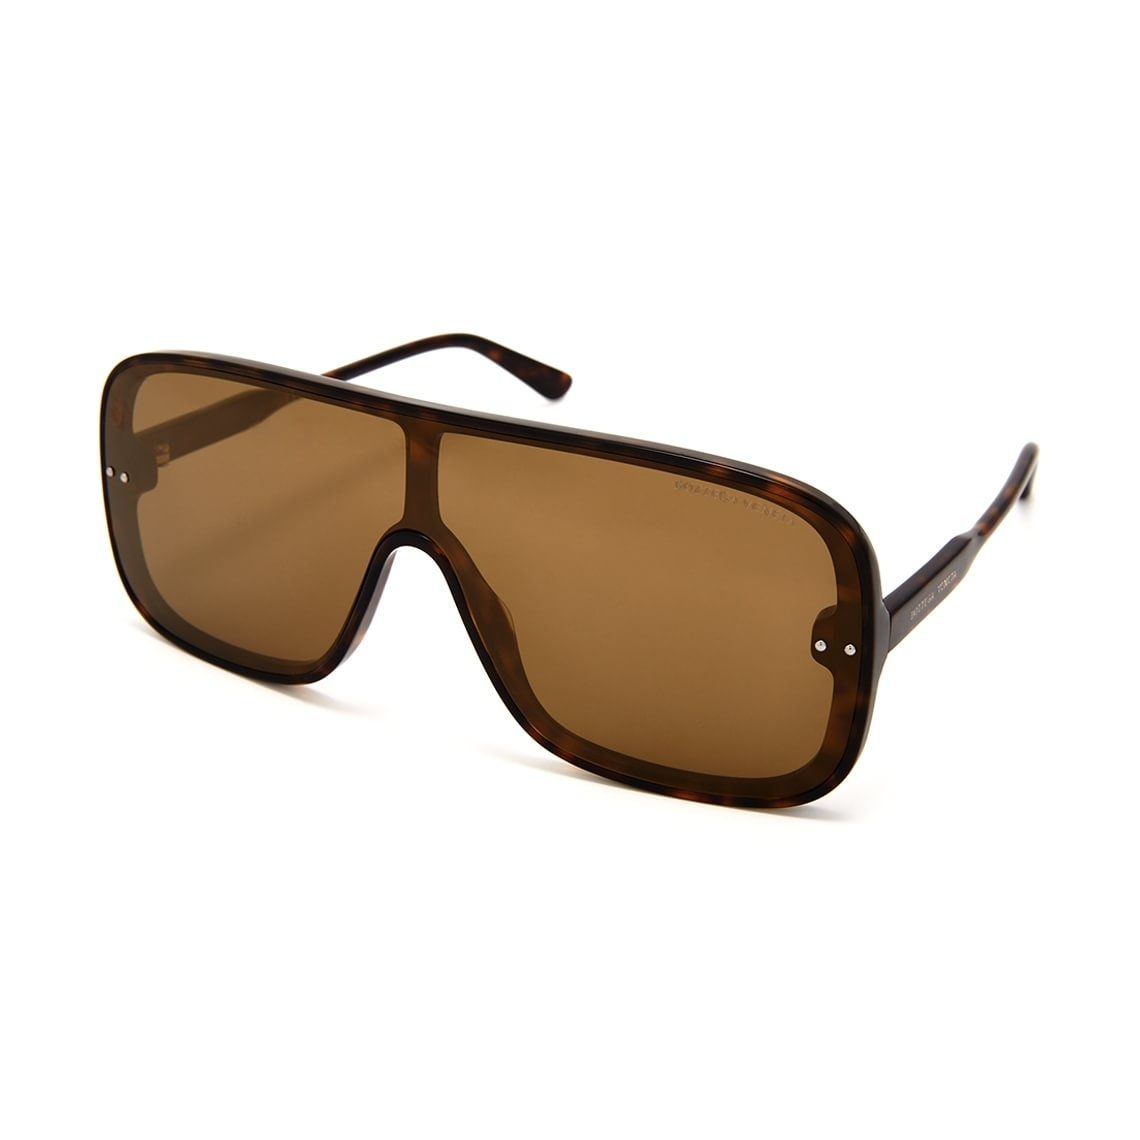 Bottega Veneta - Occhiale da Sole Uomo, Havana/Brown Shaded  BV0167S-003  C54